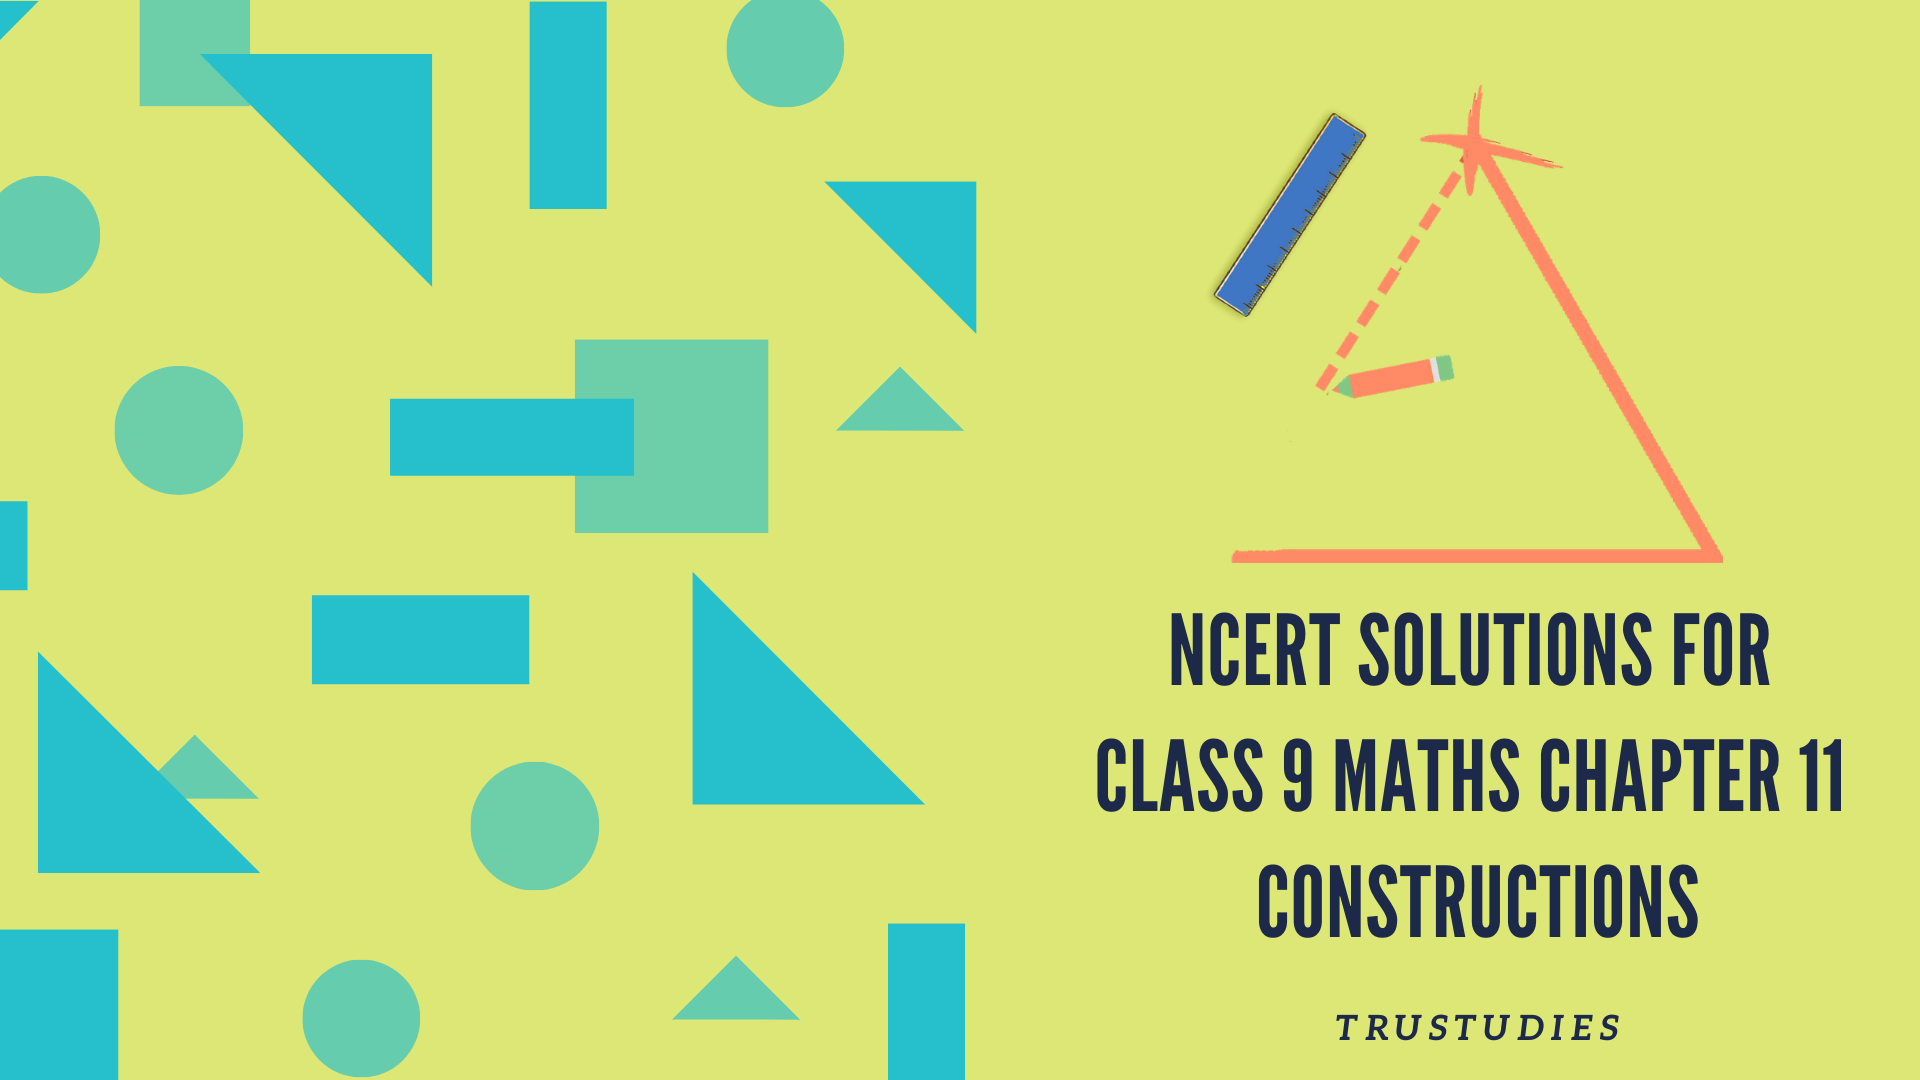 NCERT solutions for class 10 maths chapter 11 constructions banner image